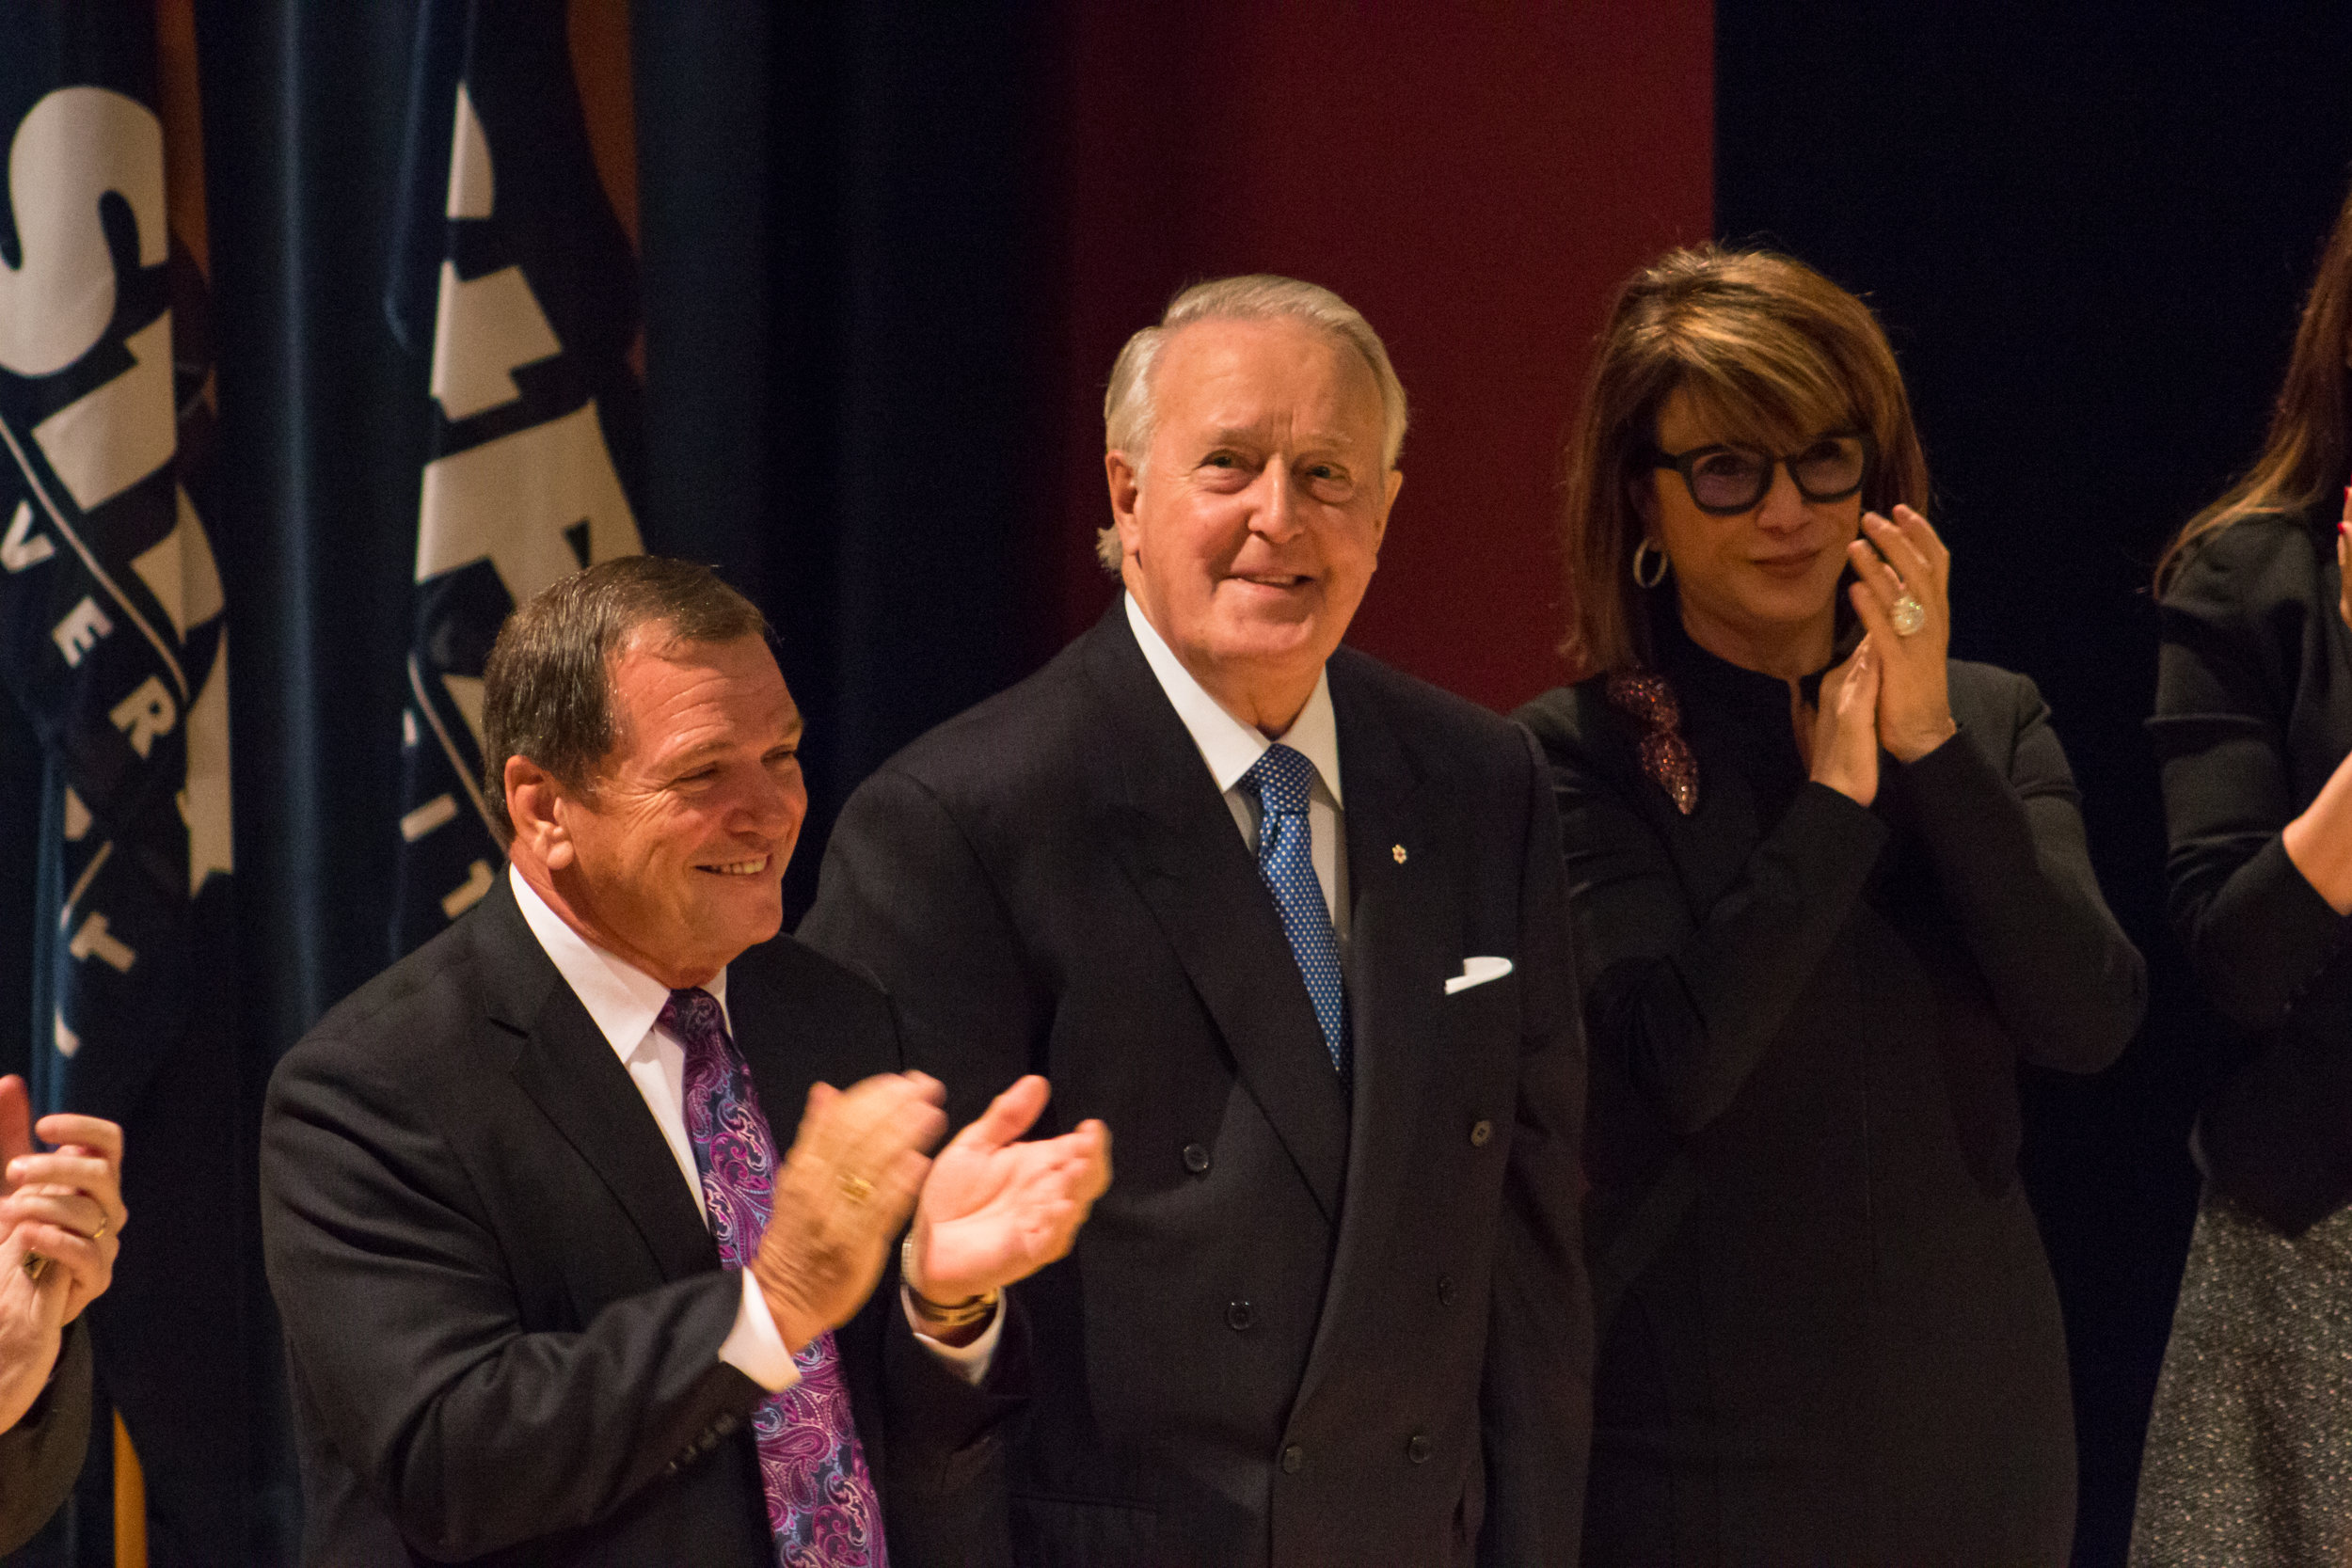 The Right Honourable Brian Mulroney, centre, with wife Mila Mulroney and Frank McKenna. Photo: Devon Chisholm.